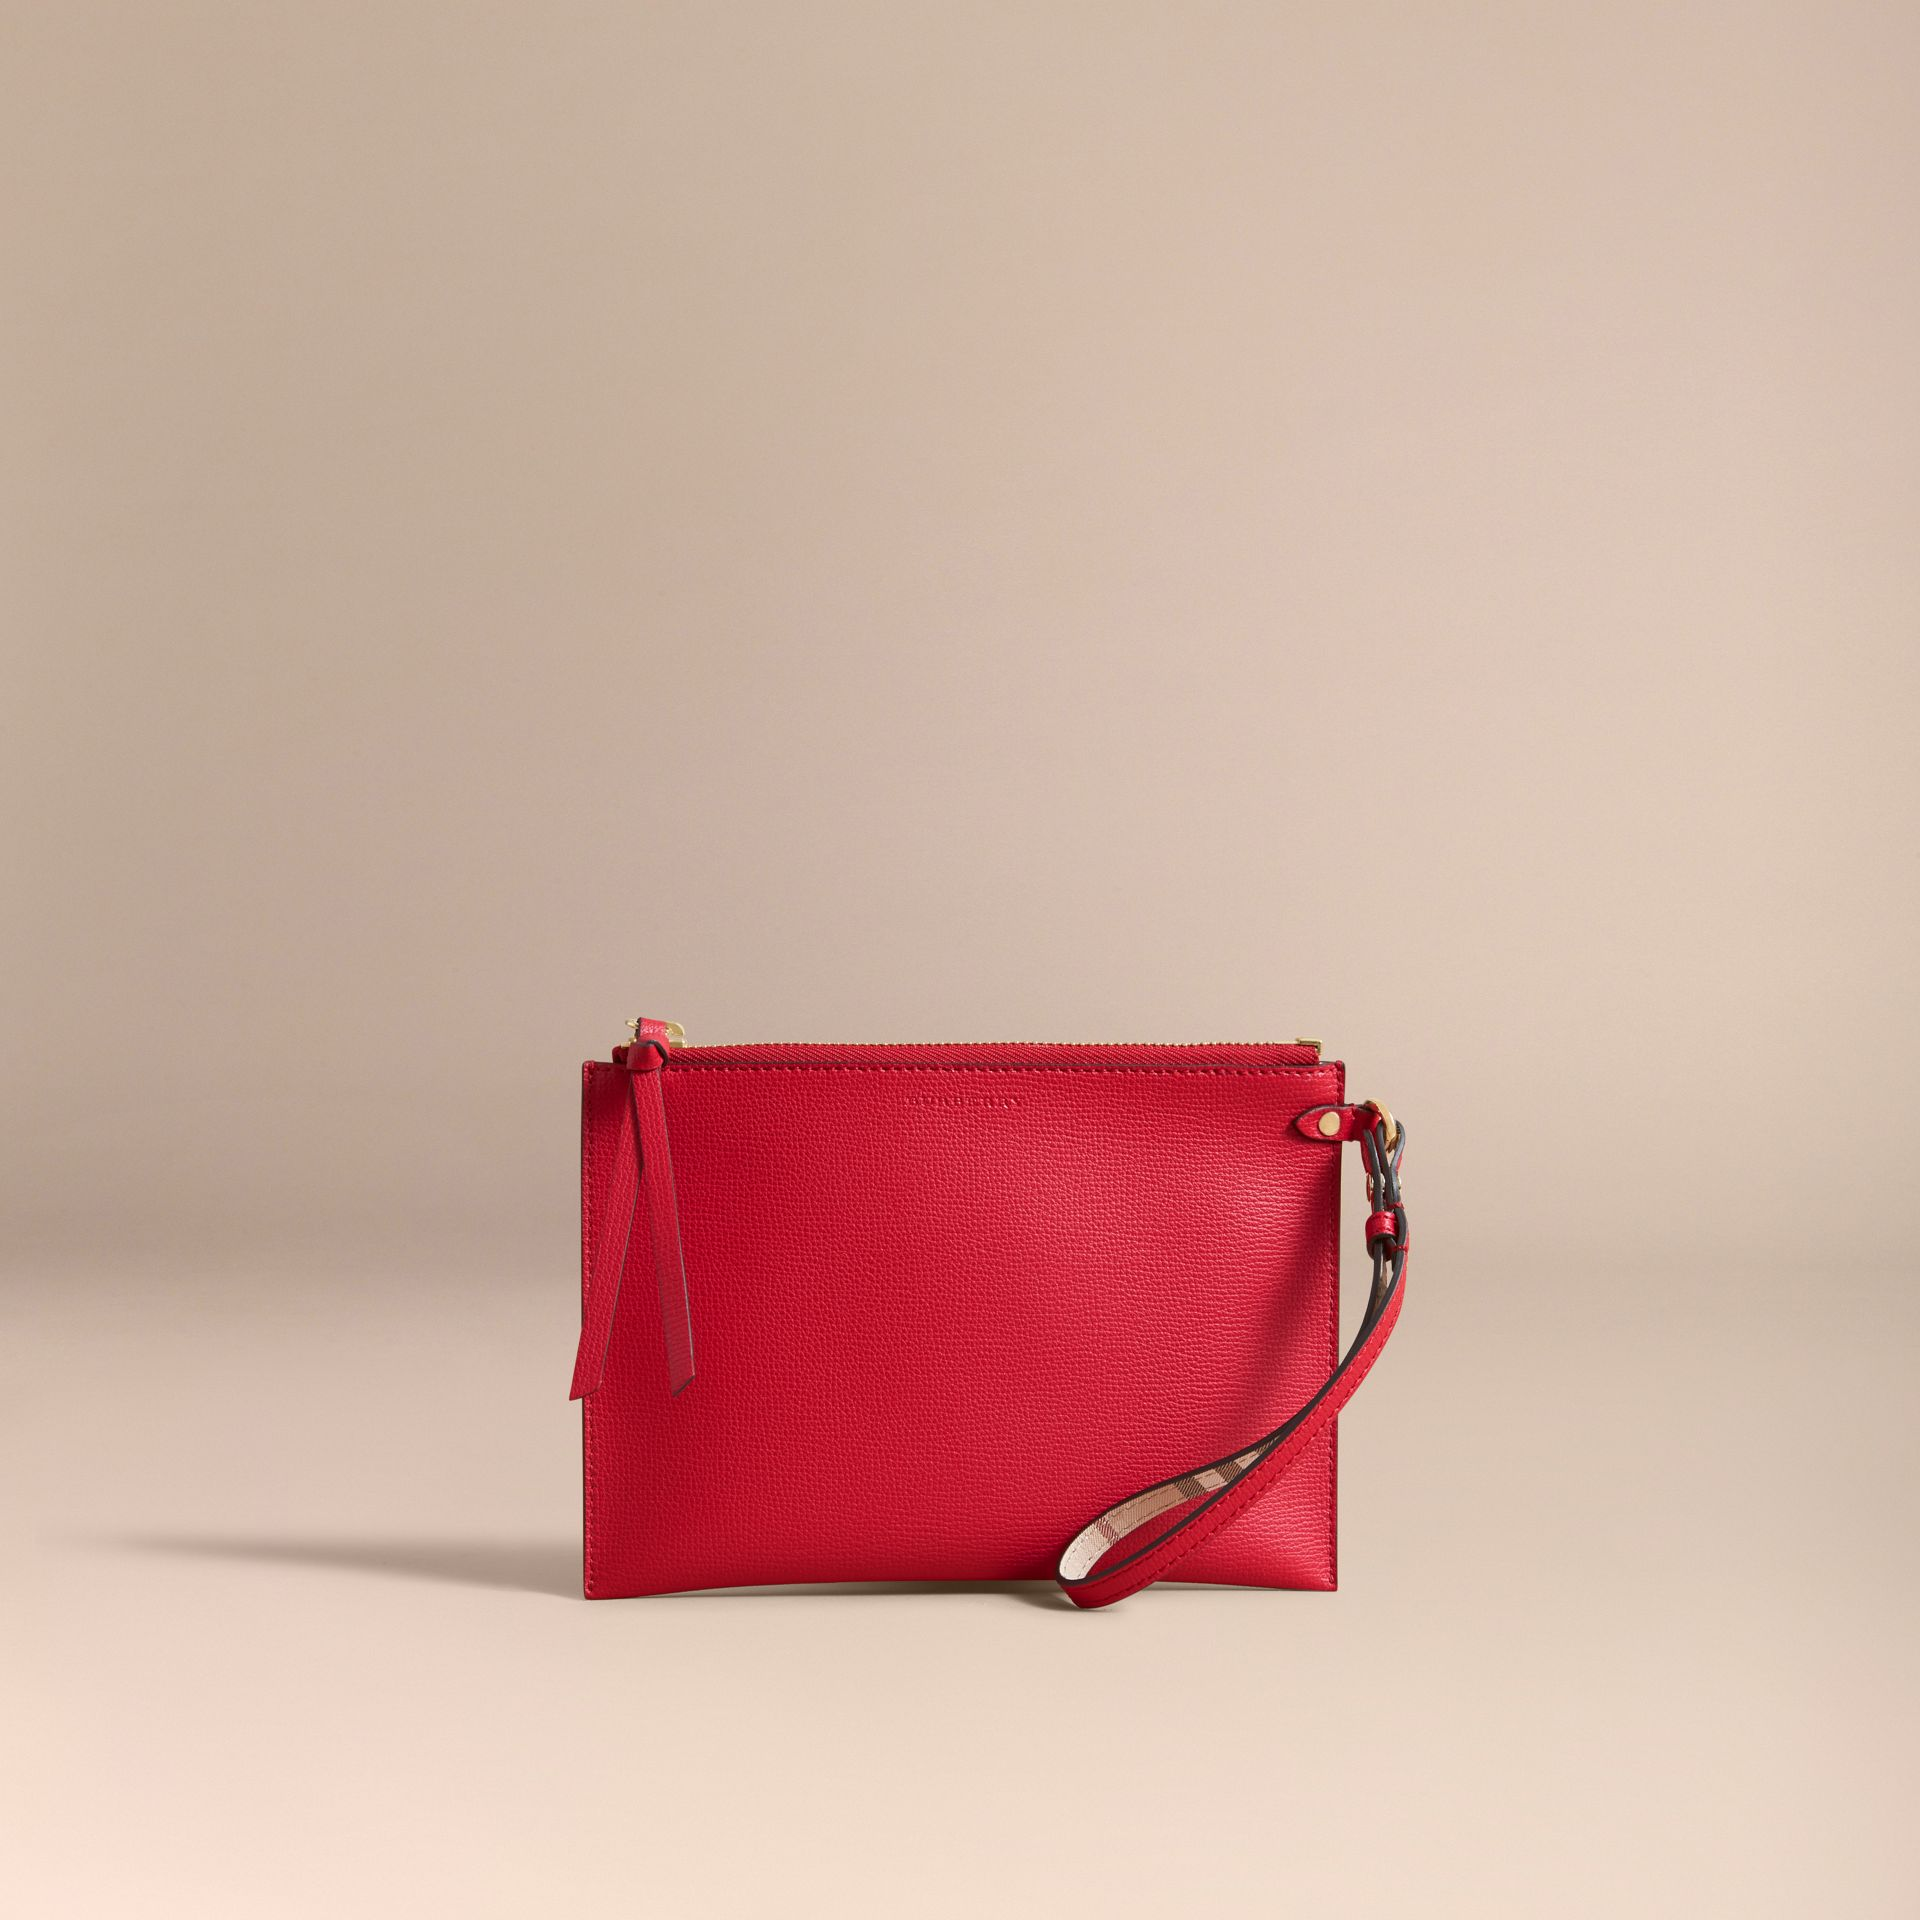 Haymarket Check and Leather Pouch in Poppy Red - Women | Burberry Canada - gallery image 6